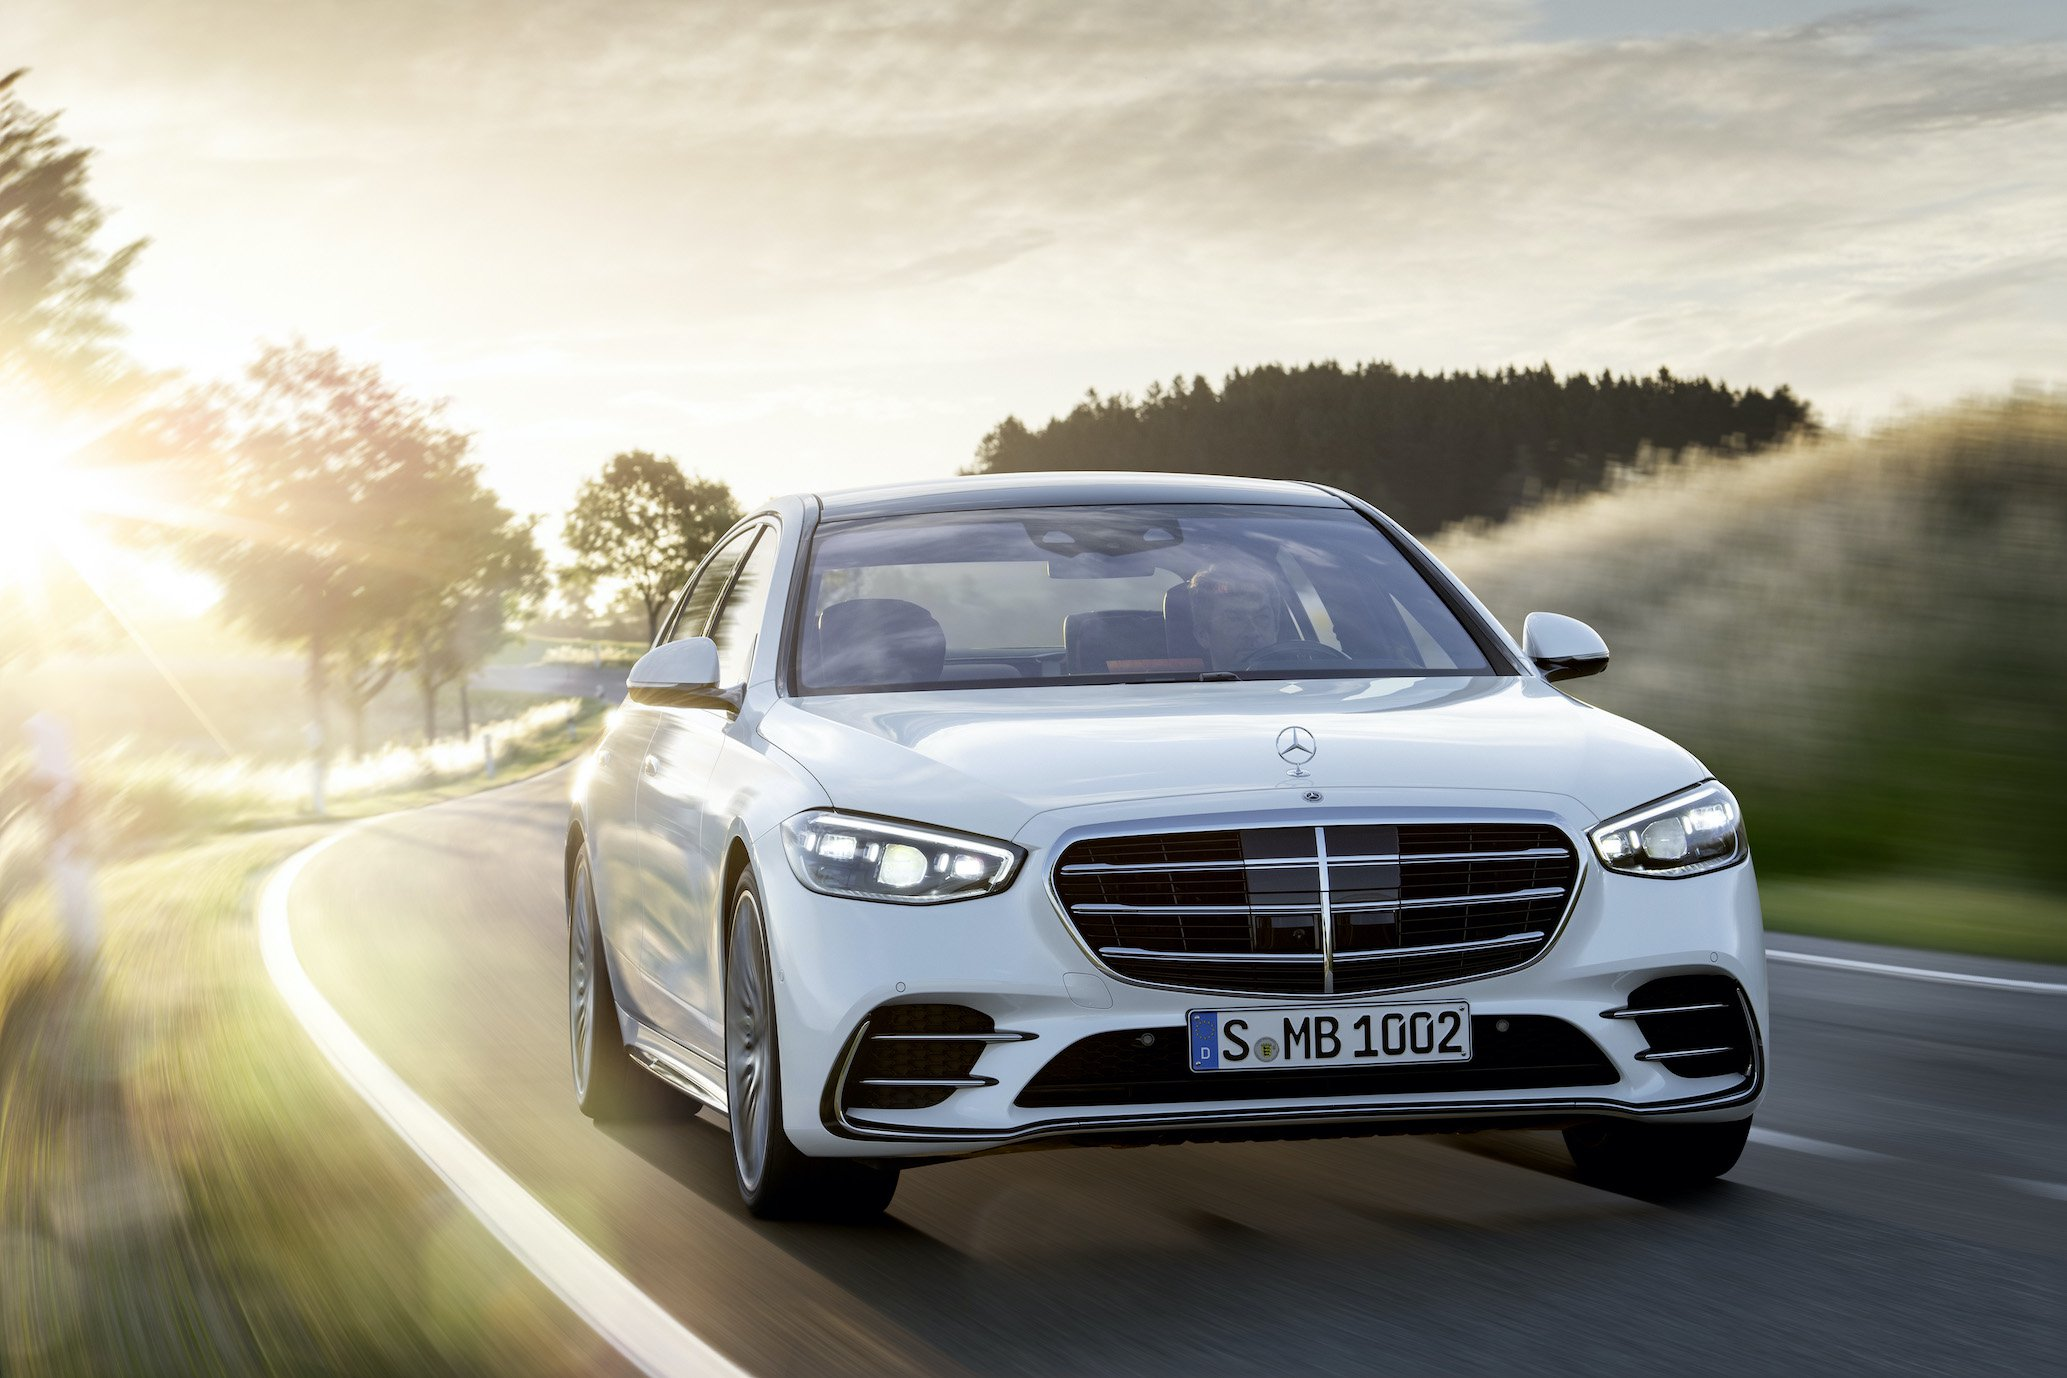 The new Mercedes-Benz S-Class : Automotive luxury experienced in a completely new way